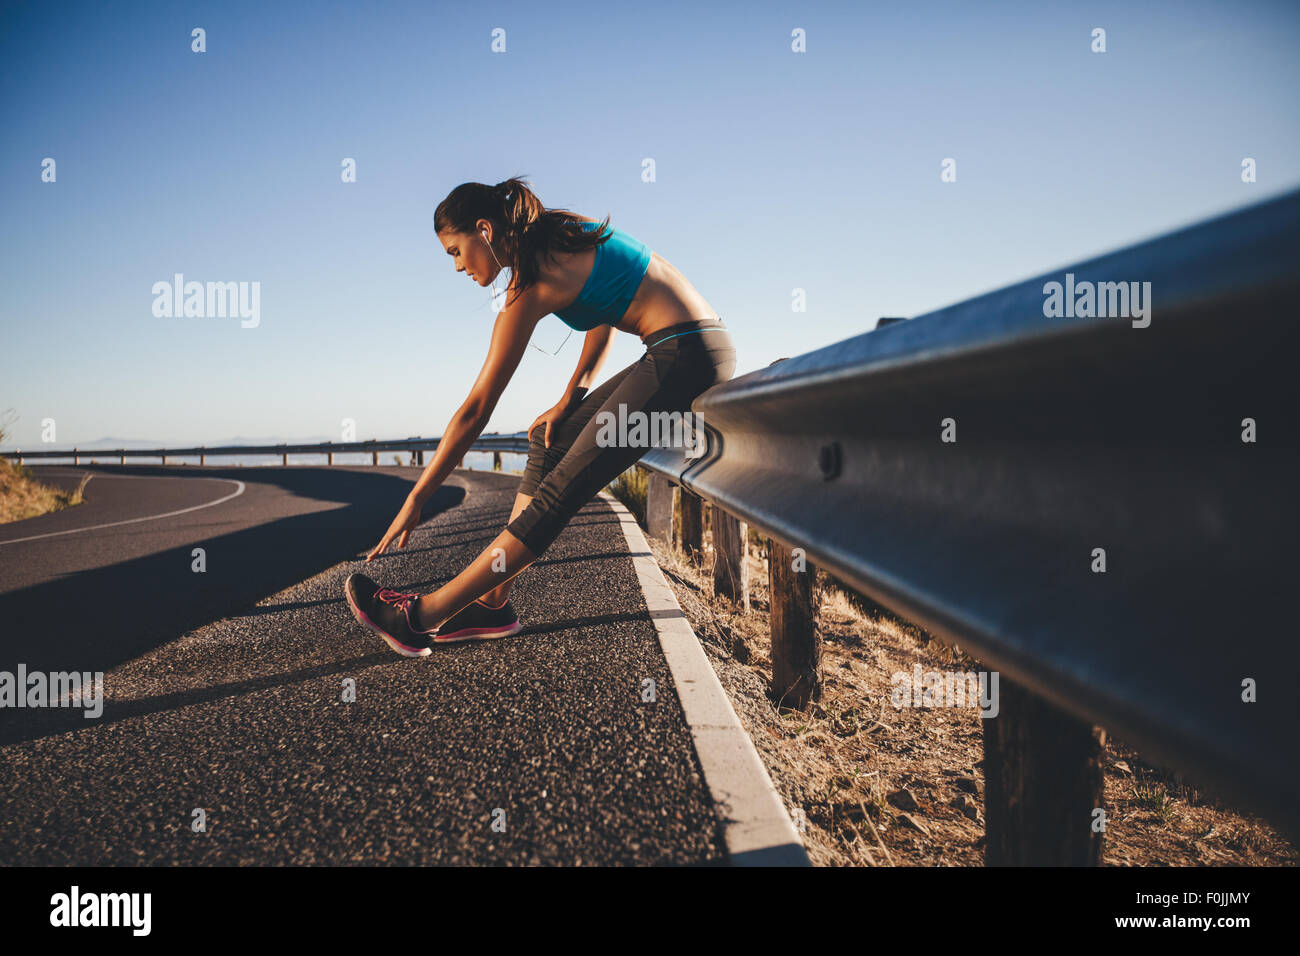 Young woman doing some stretching after a run. Runner leaning on road guardrail relaxing her calf muscles. - Stock Image